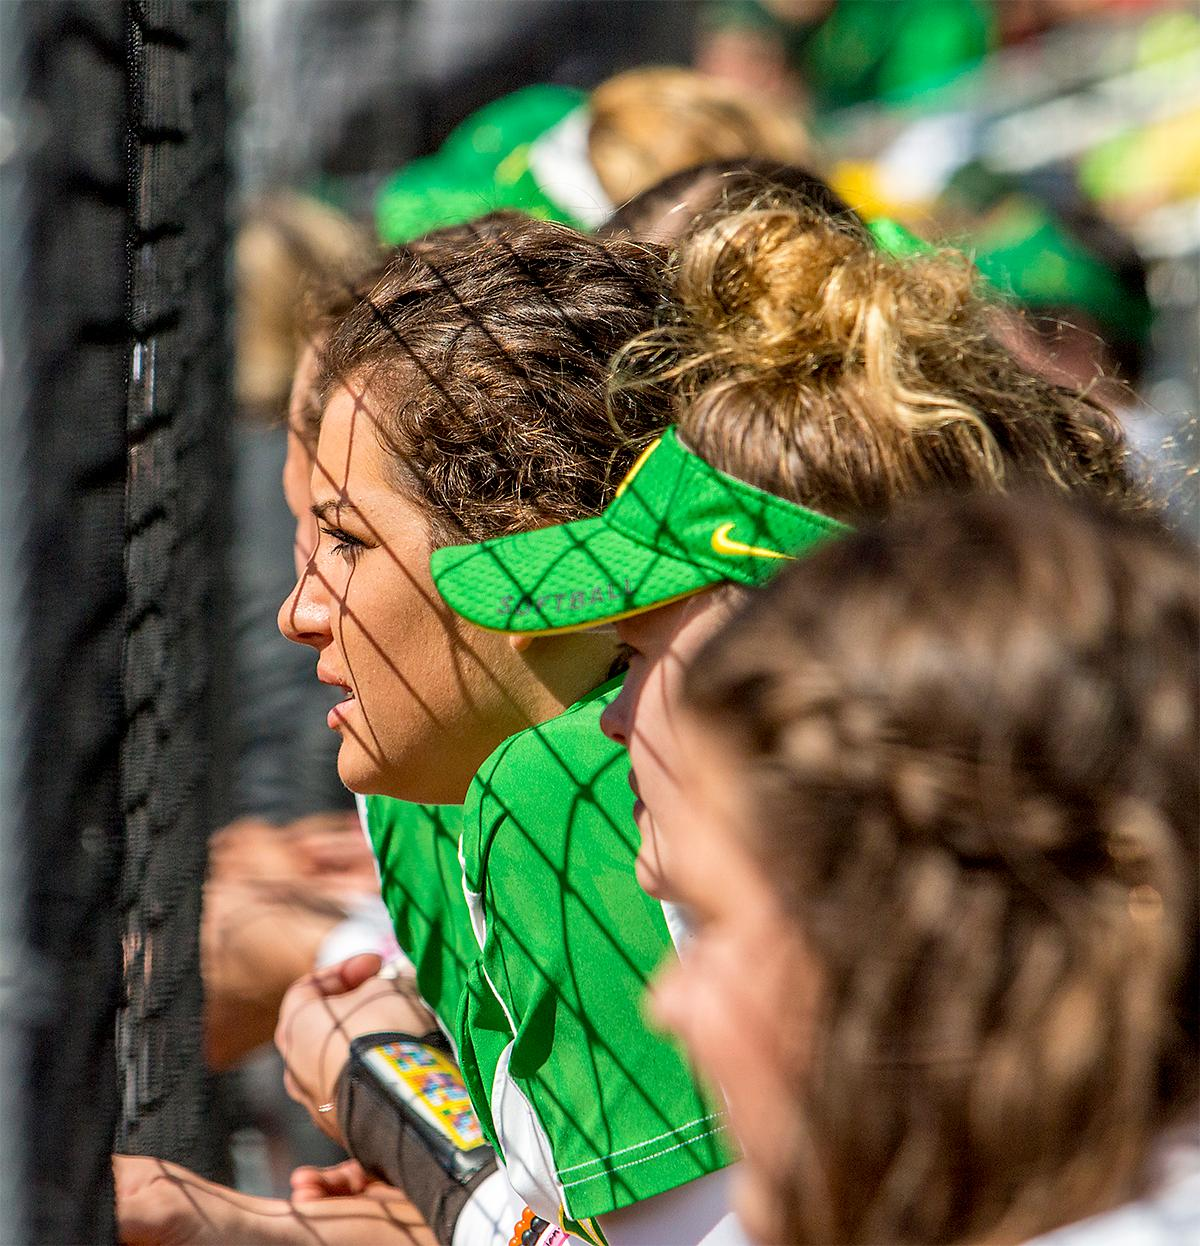 The Duck's Maggie Balint (#25) watches the game from the Duck's dugout. The Oregon Ducks Softball team took their third win over the Arizona Sun Devils, 1-0, in the final game of the weekends series that saw the game go into an eighth inning before the Duck?s Mia Camuso (#7) scored a hit allowing teammate Haley Cruse (#26) to run into home plate for a point. The Ducks are now 33-0 this season and will next play a double header against Portland State on Tuesday, April 4 at Jane Sanders Stadium. Photo by August Frank, Oregon News Lab